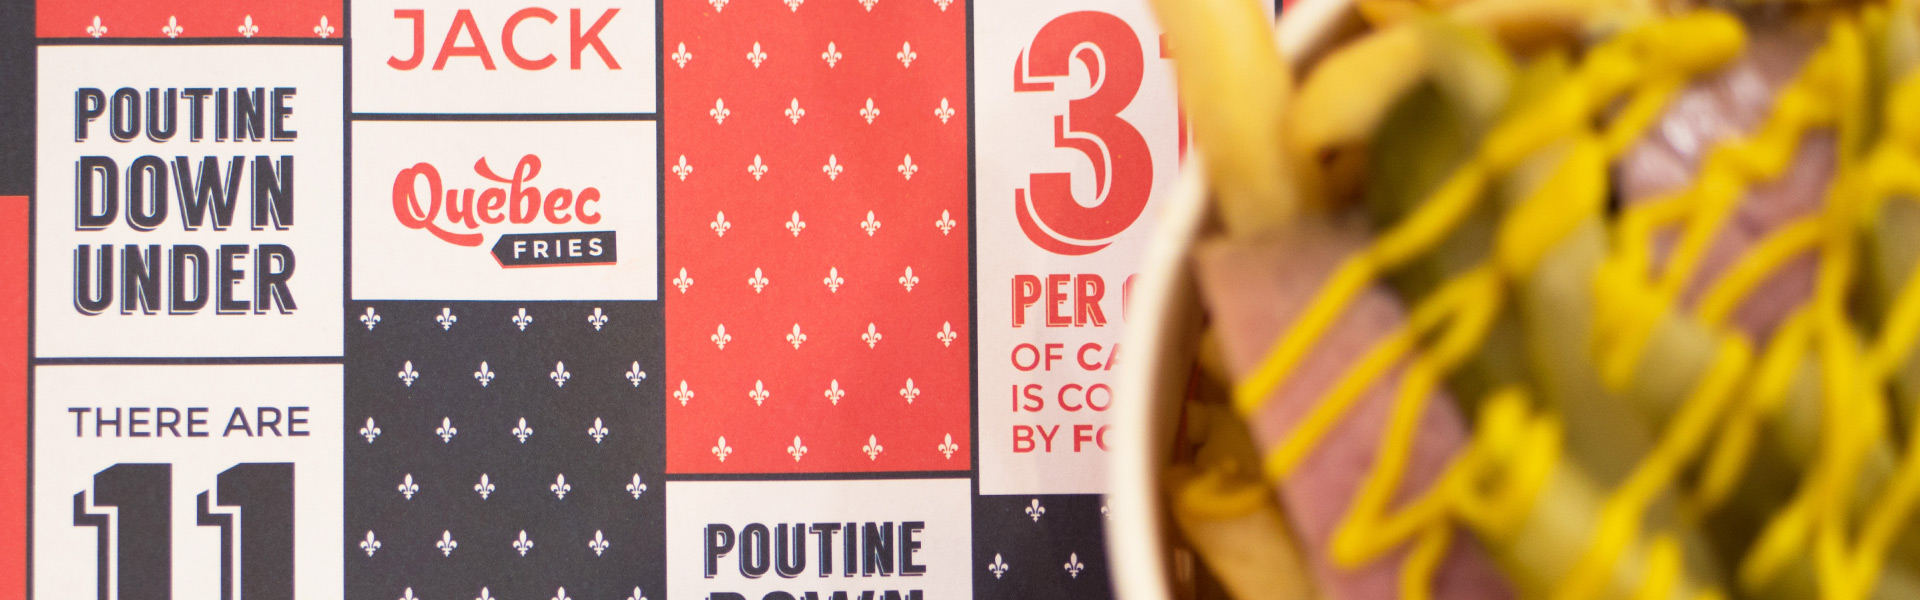 Quebec Fries Close Up Branding